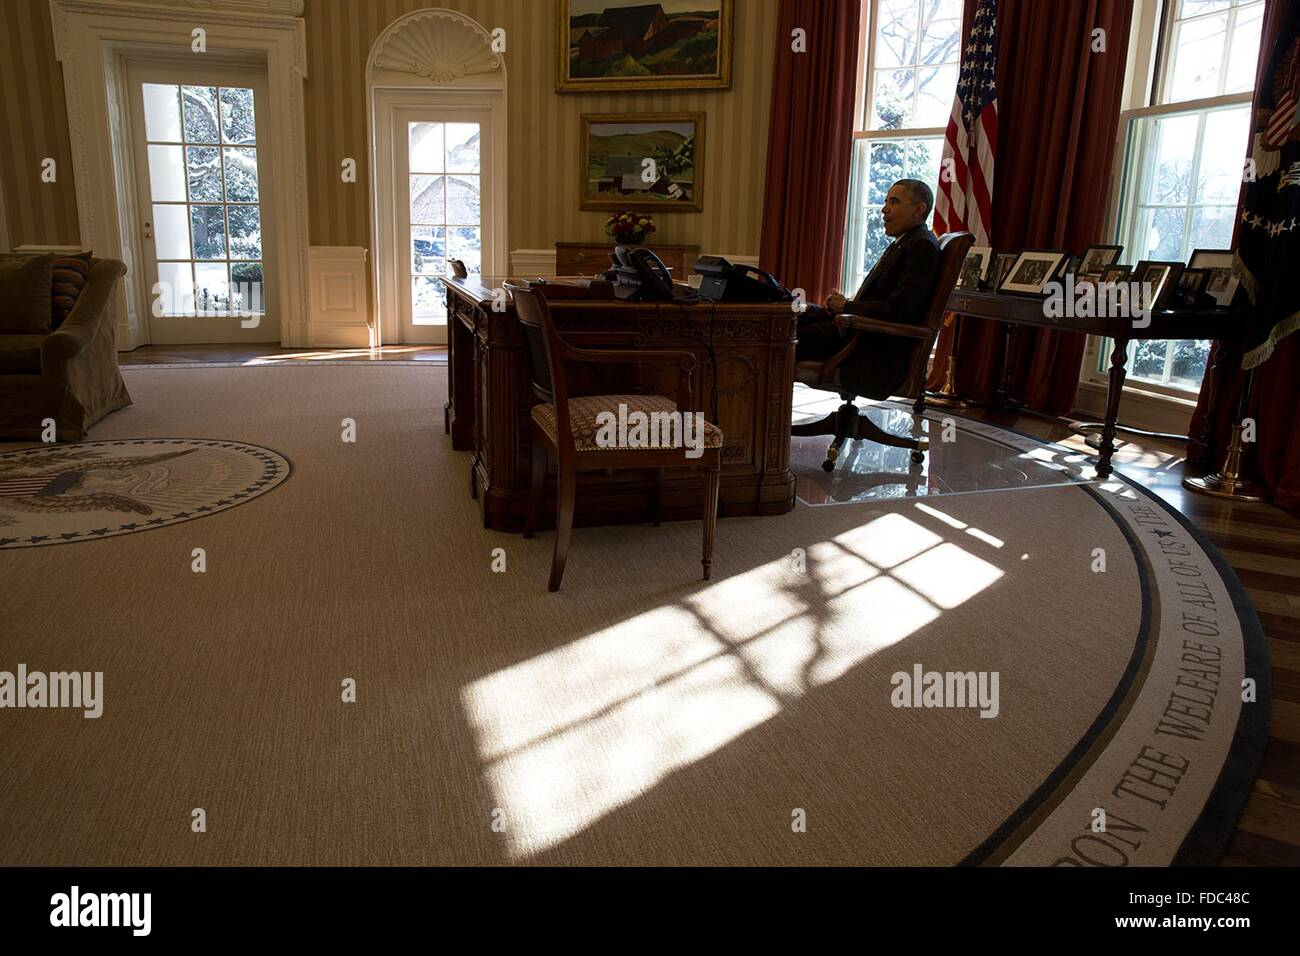 white house oval office desk. U.S. President Barack Obama Sits At The Resolute Desk As Sun Streams Into Oval Office Of White House February 17, 2015 In Washington, DC. E